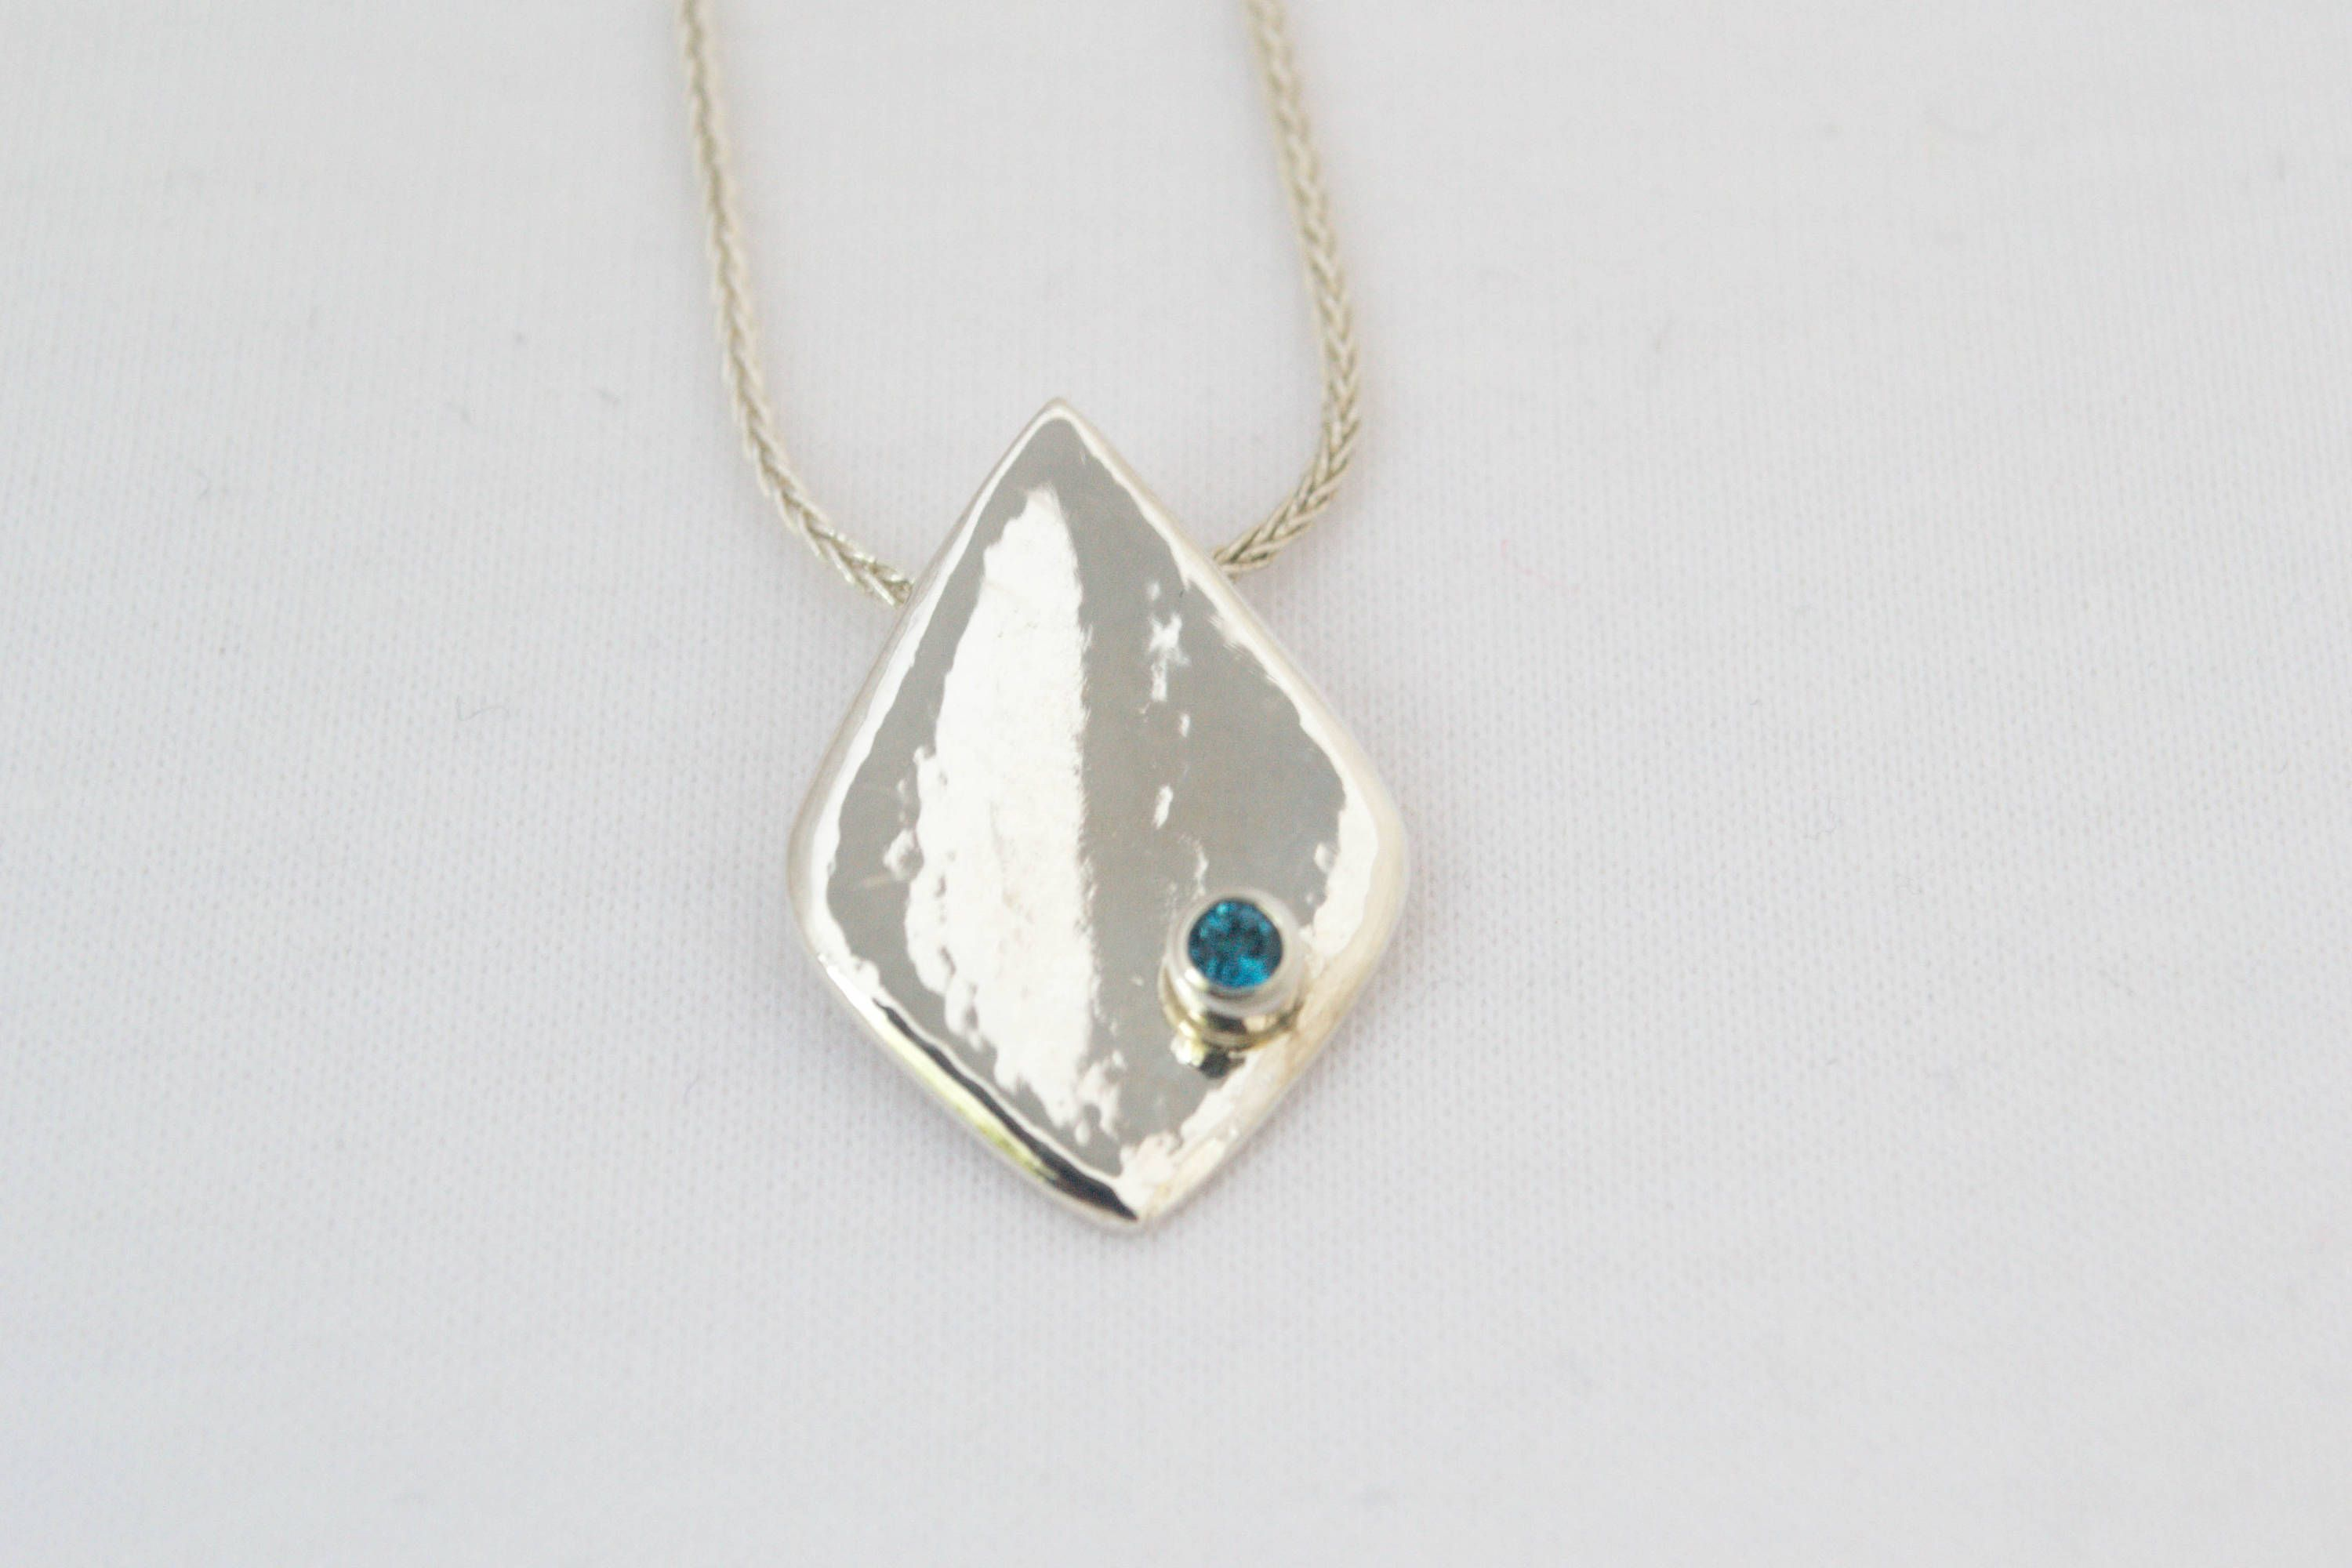 Blue Topaz - Sterling Silver Diamond Shaped Pendant  - Handcrafted Necklace by hollybluejewelry on Etsy